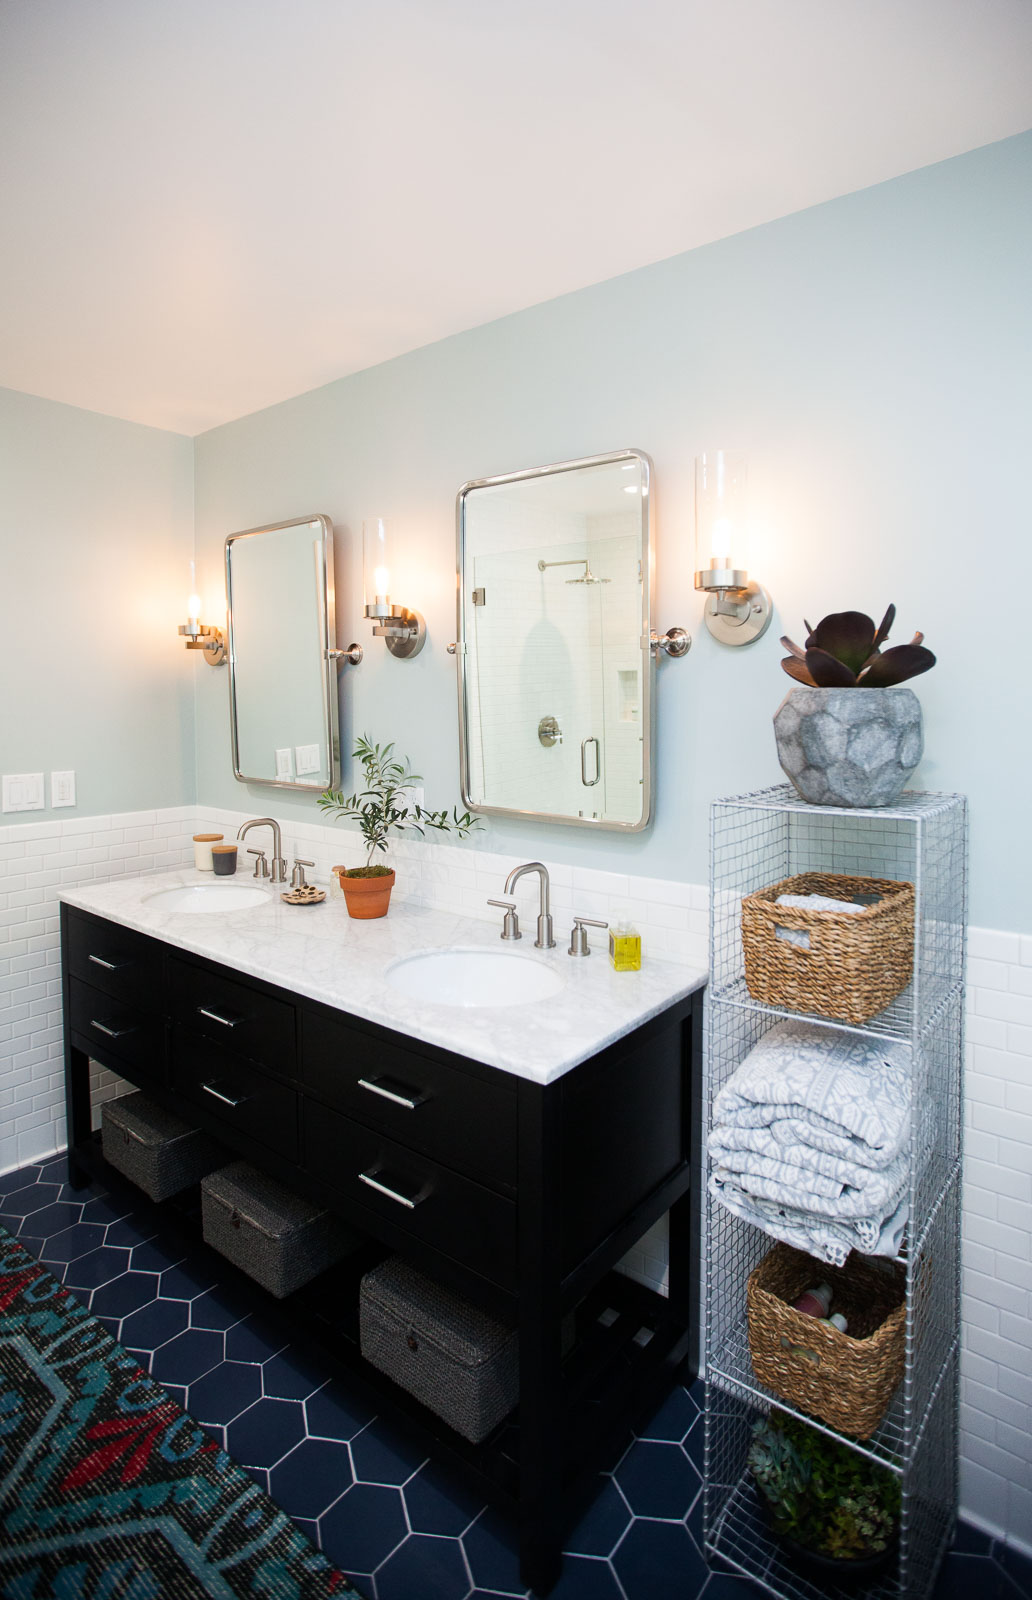 Master Bathroom Renovation // Before + After - The ...